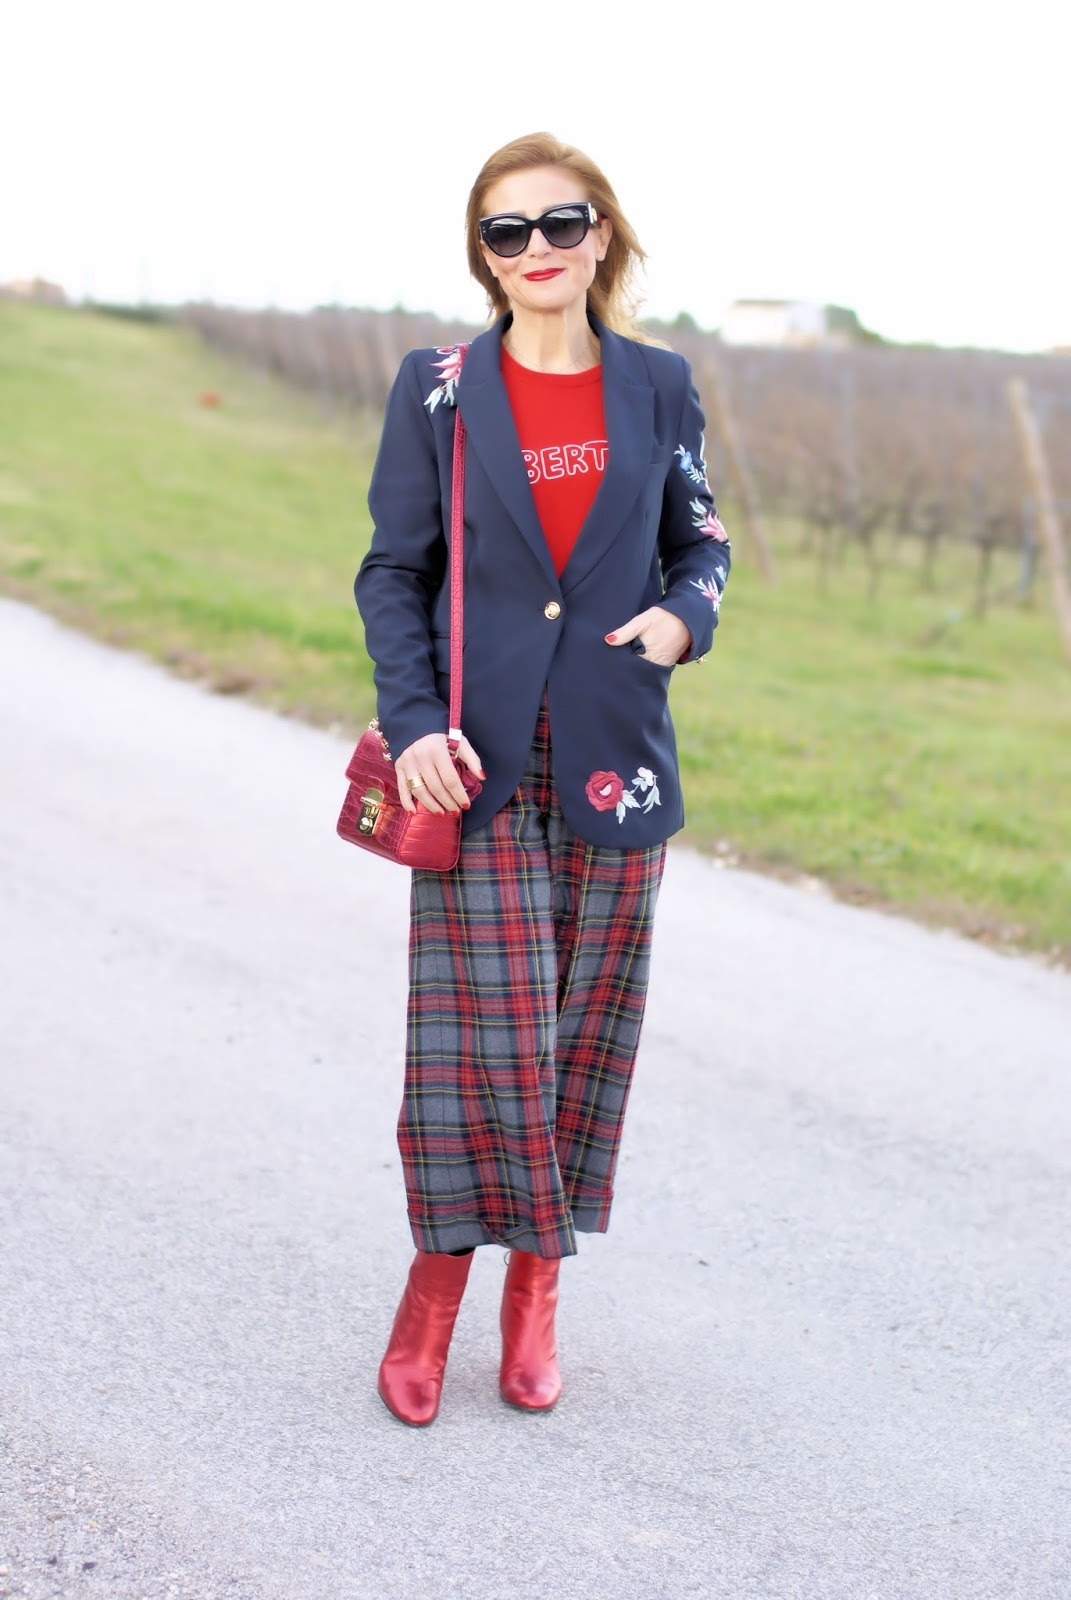 Zaful embroidered blazer and Vicolo plaid pants on Fashion and Cookies fashion blog, fashion blogger style